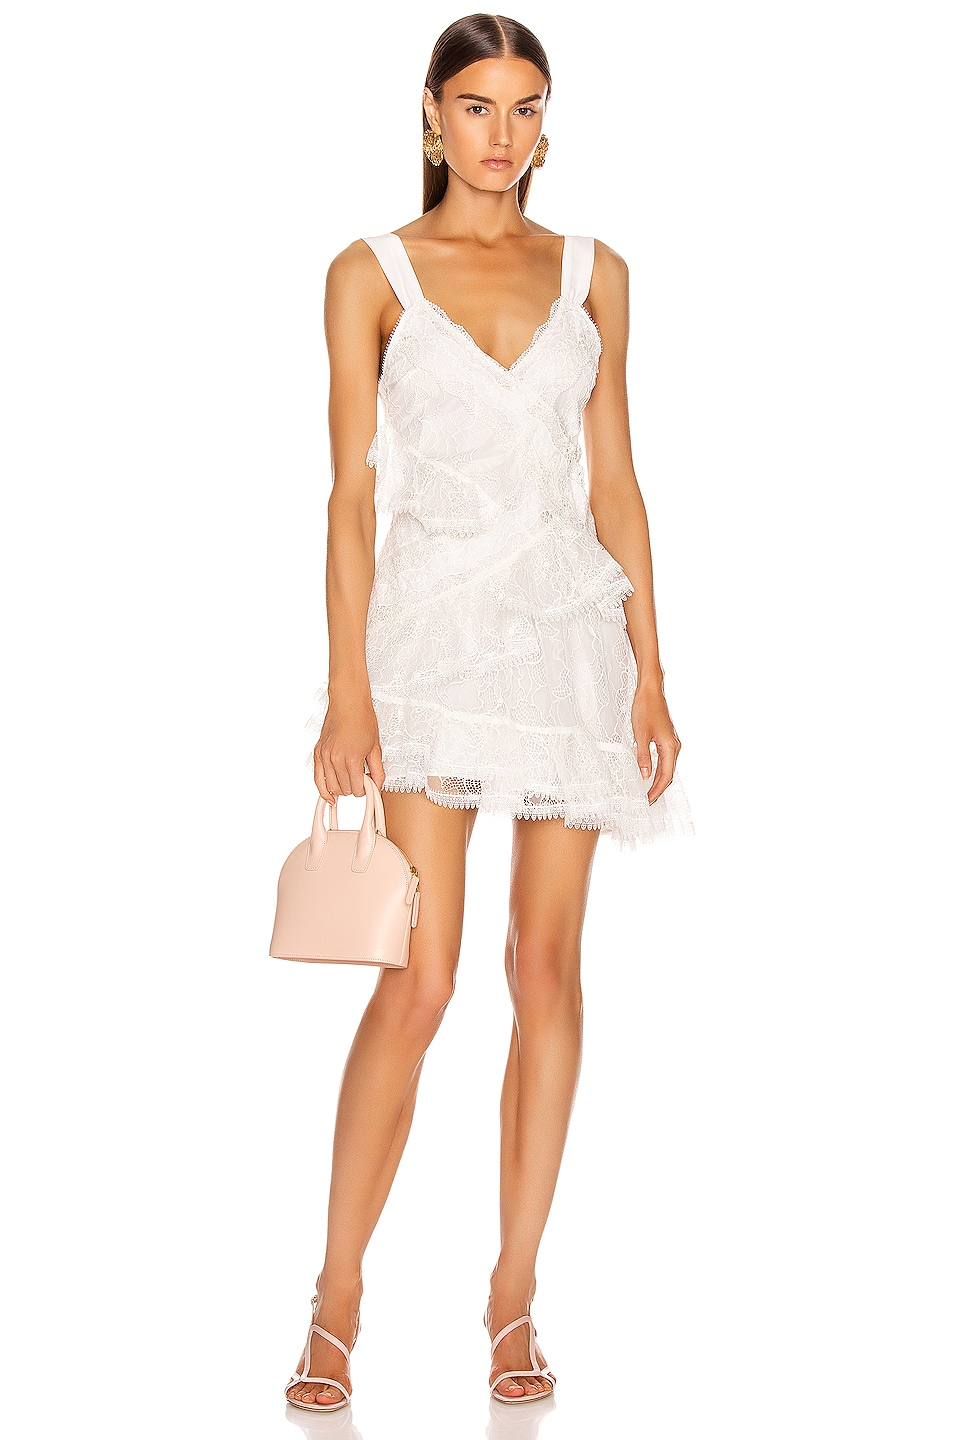 Image 1 of Alexis Ladonna Dress in White